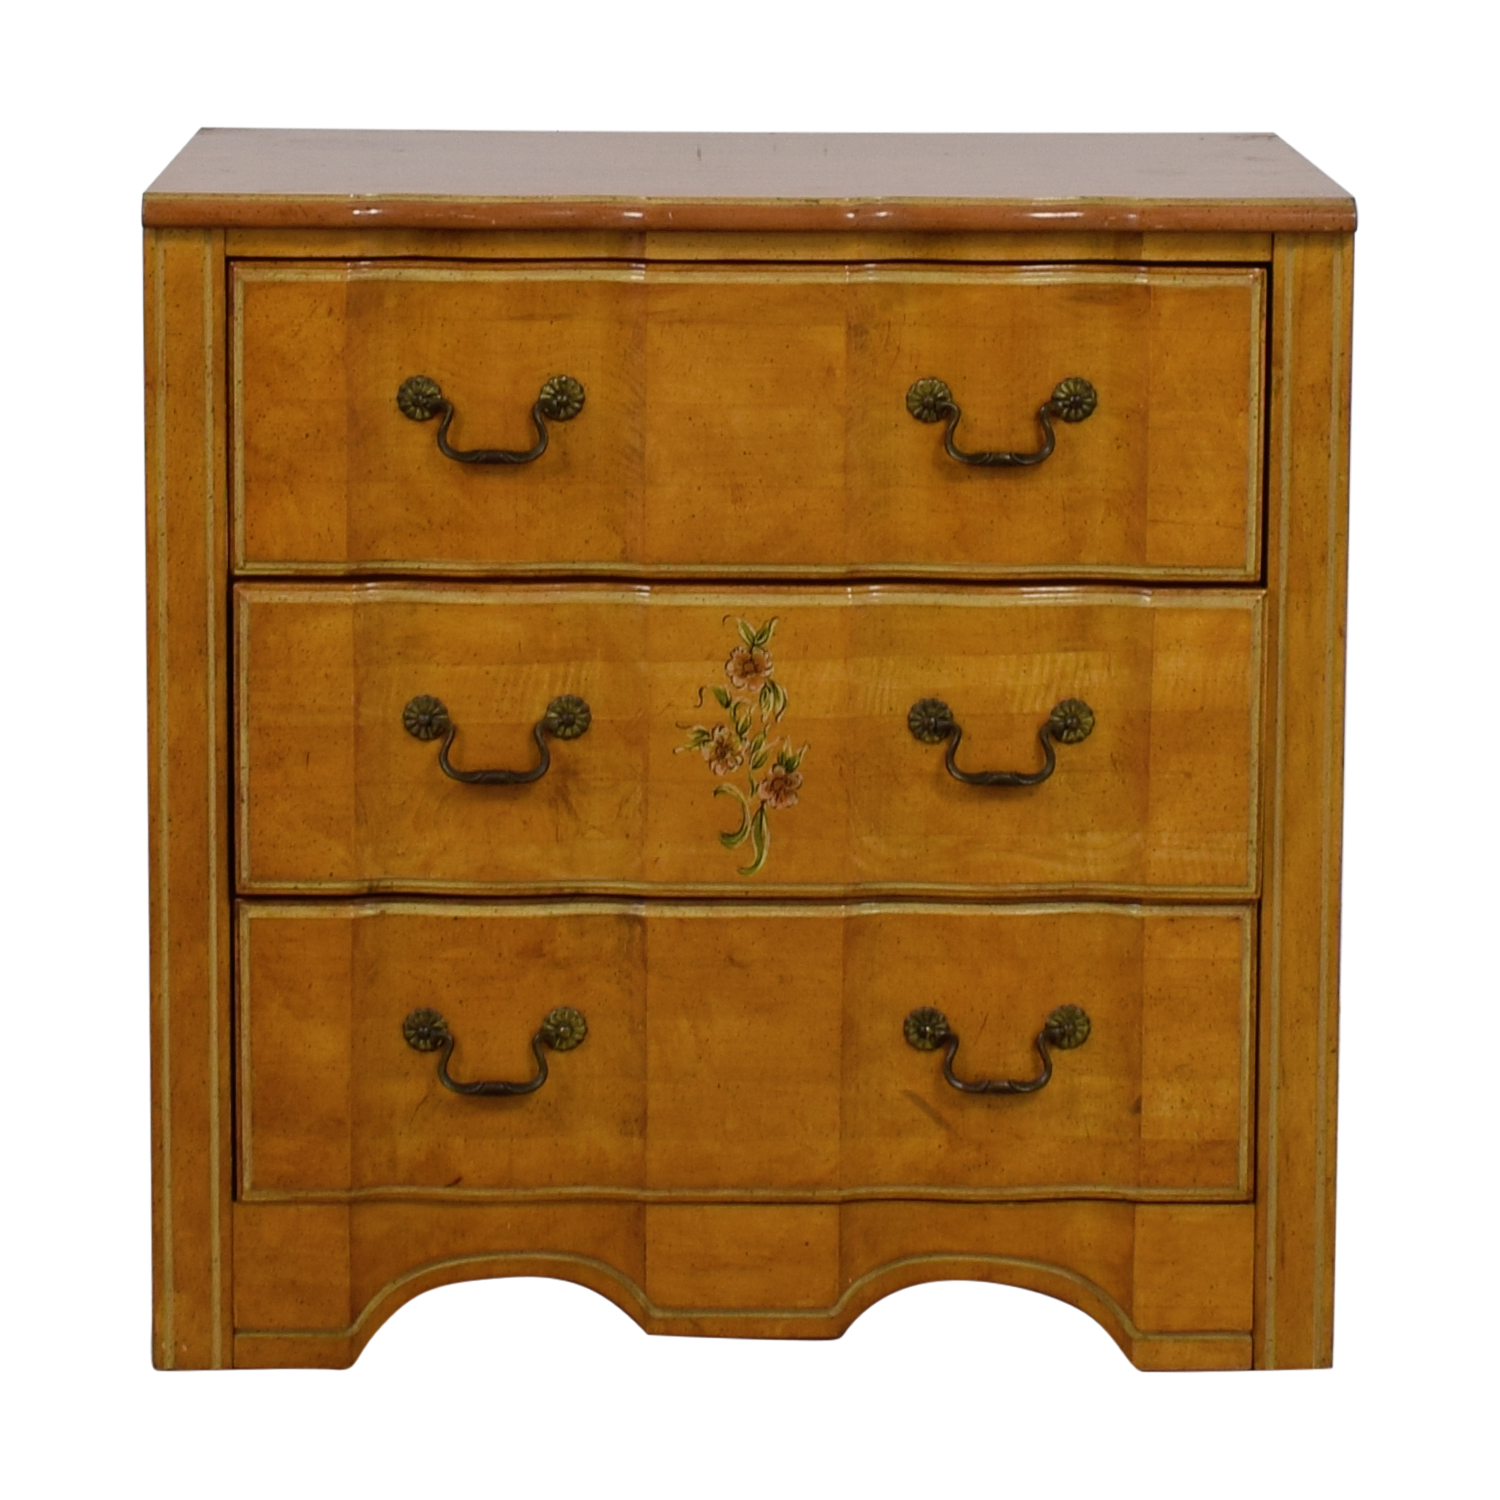 Vintage Painted Three-Drawer Chest of Drawers nj